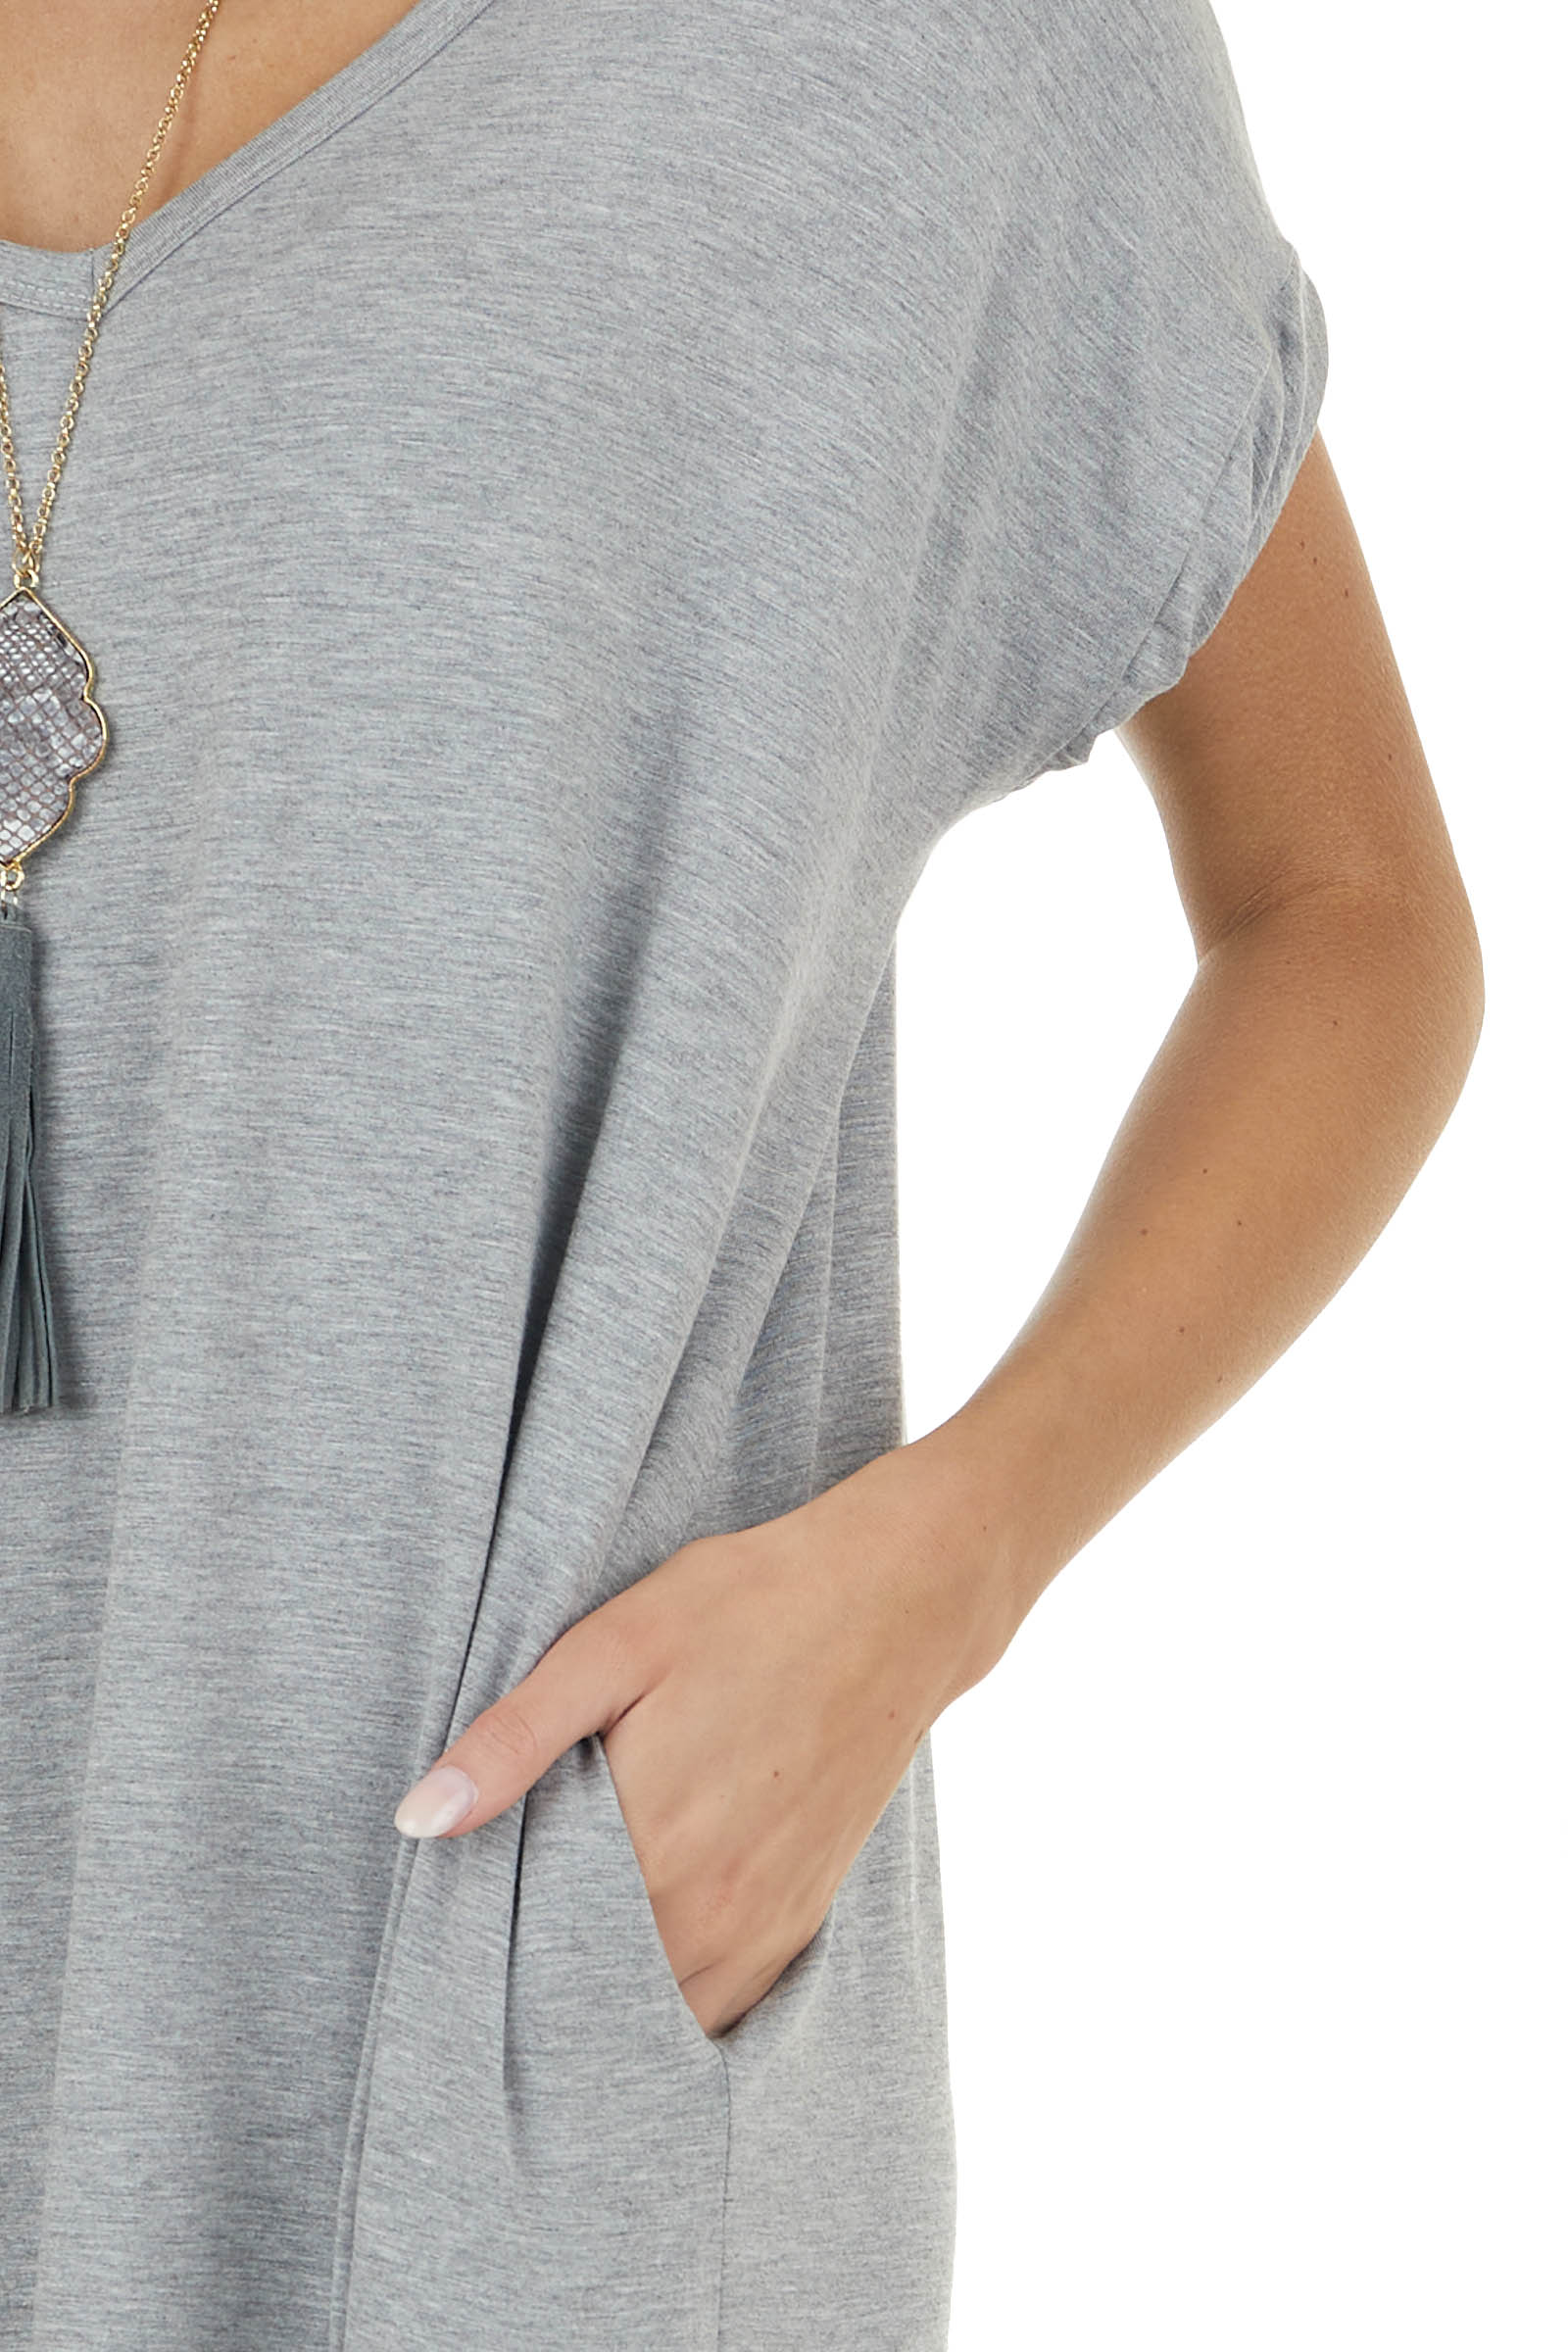 Heathered Grey Maxi Dress with Side Slits and Side Pockets